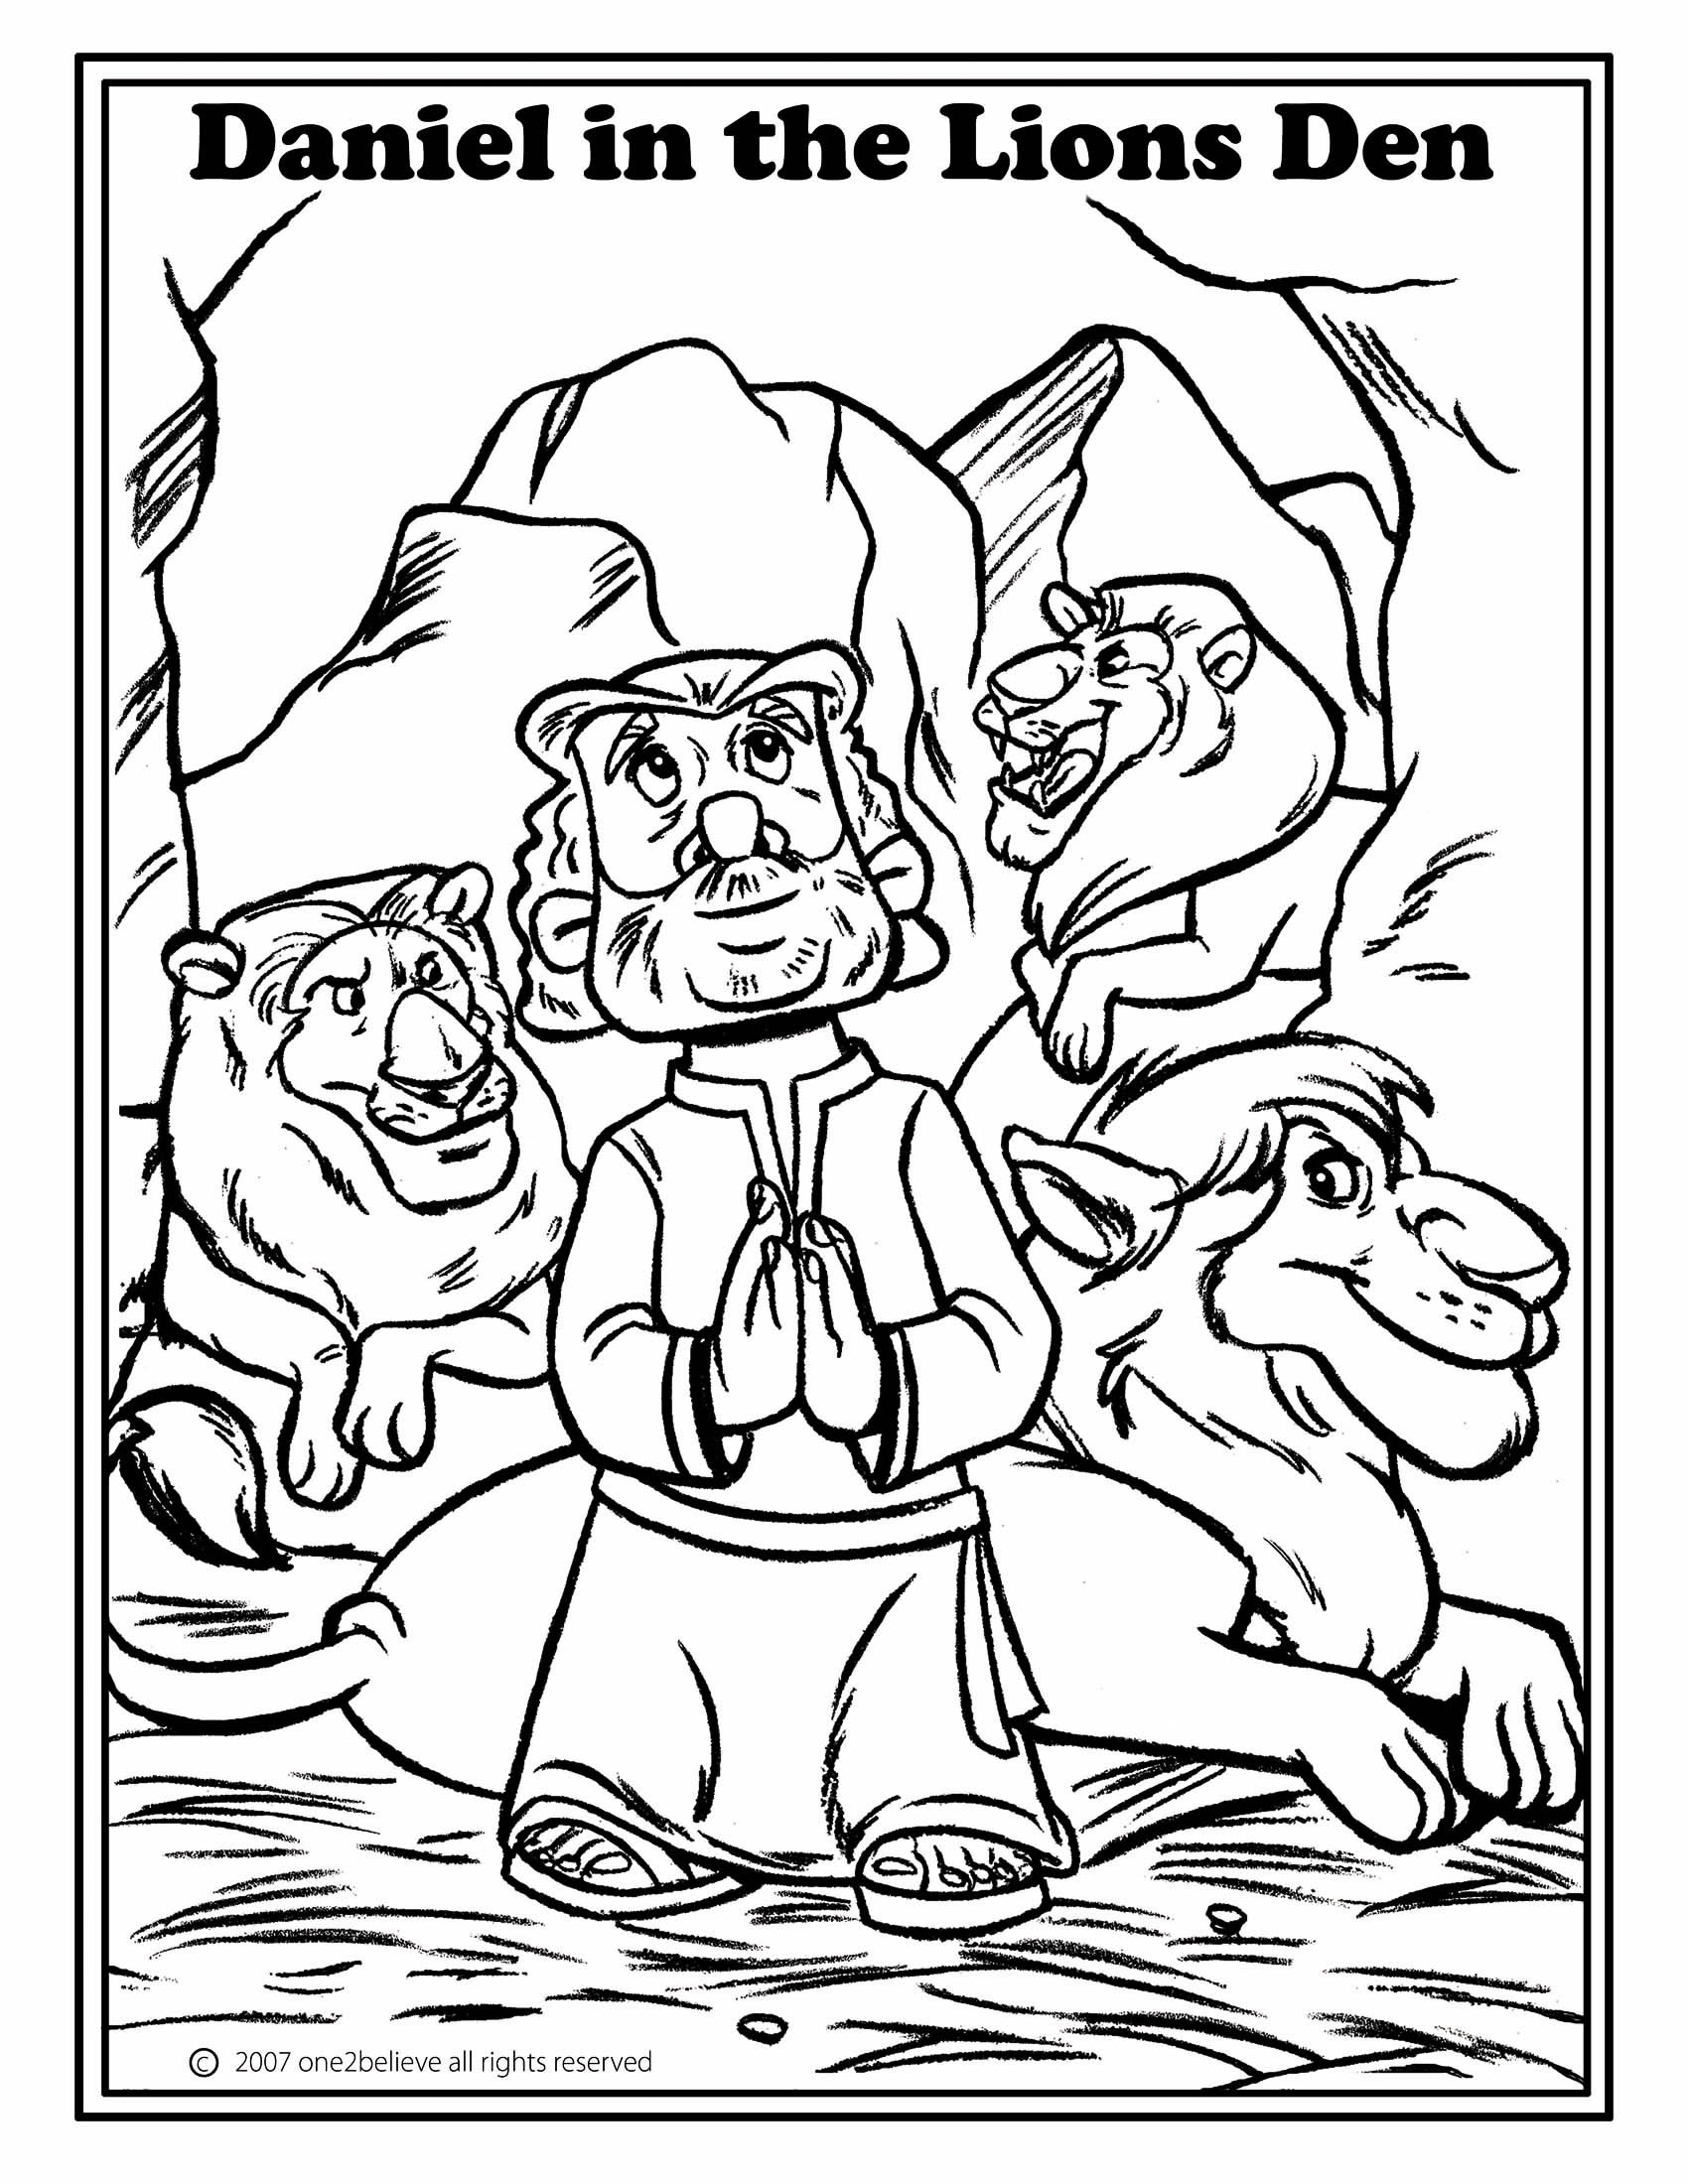 94 Bible Story Coloring Pages In Spanish Images & Pictures In HD